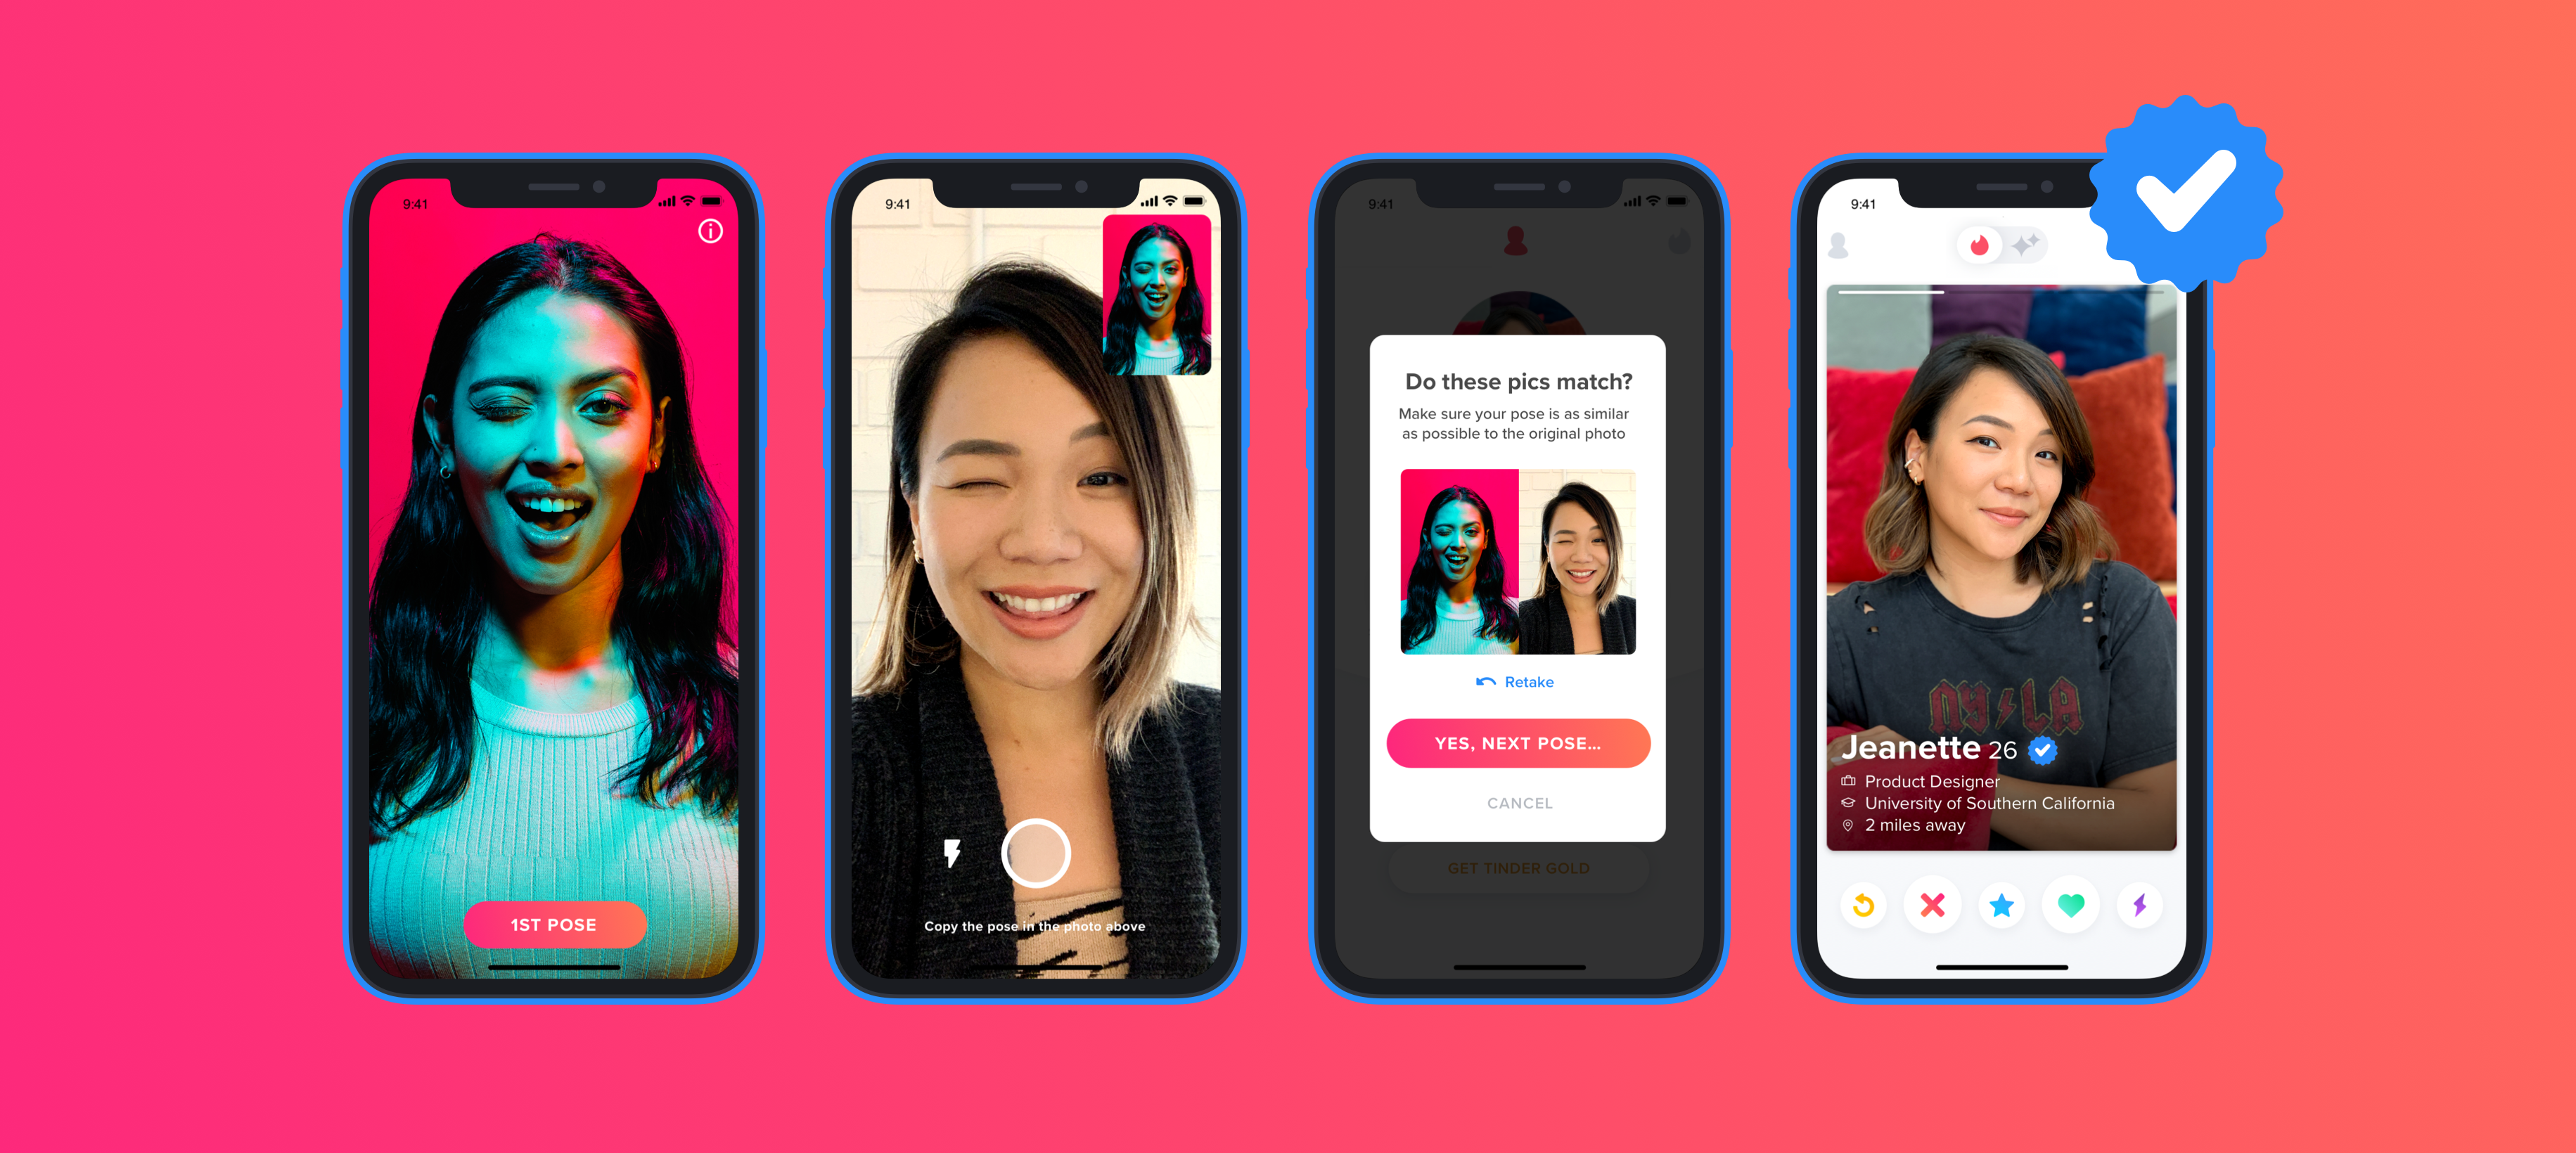 how to make a fake tinder without phone number